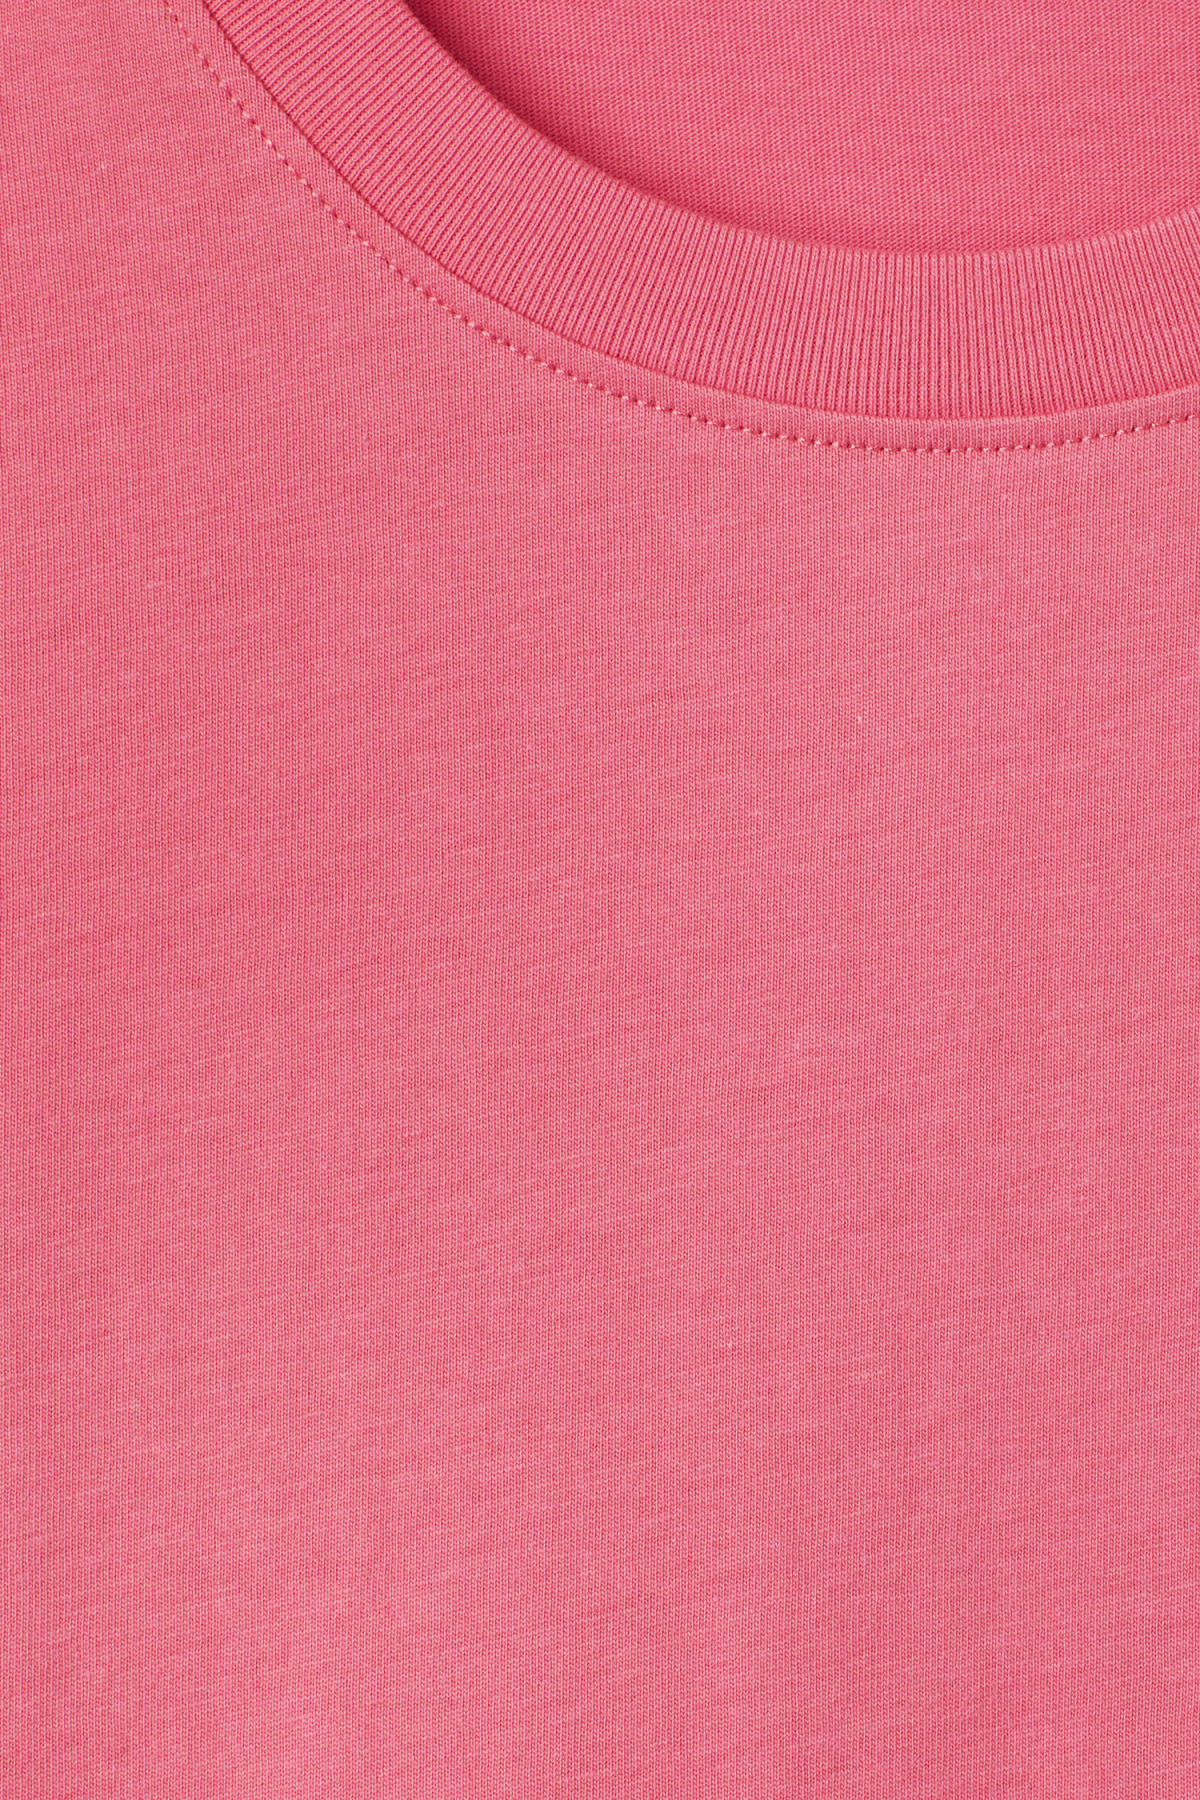 Detailed image of Weekday frank t-shirt in pink